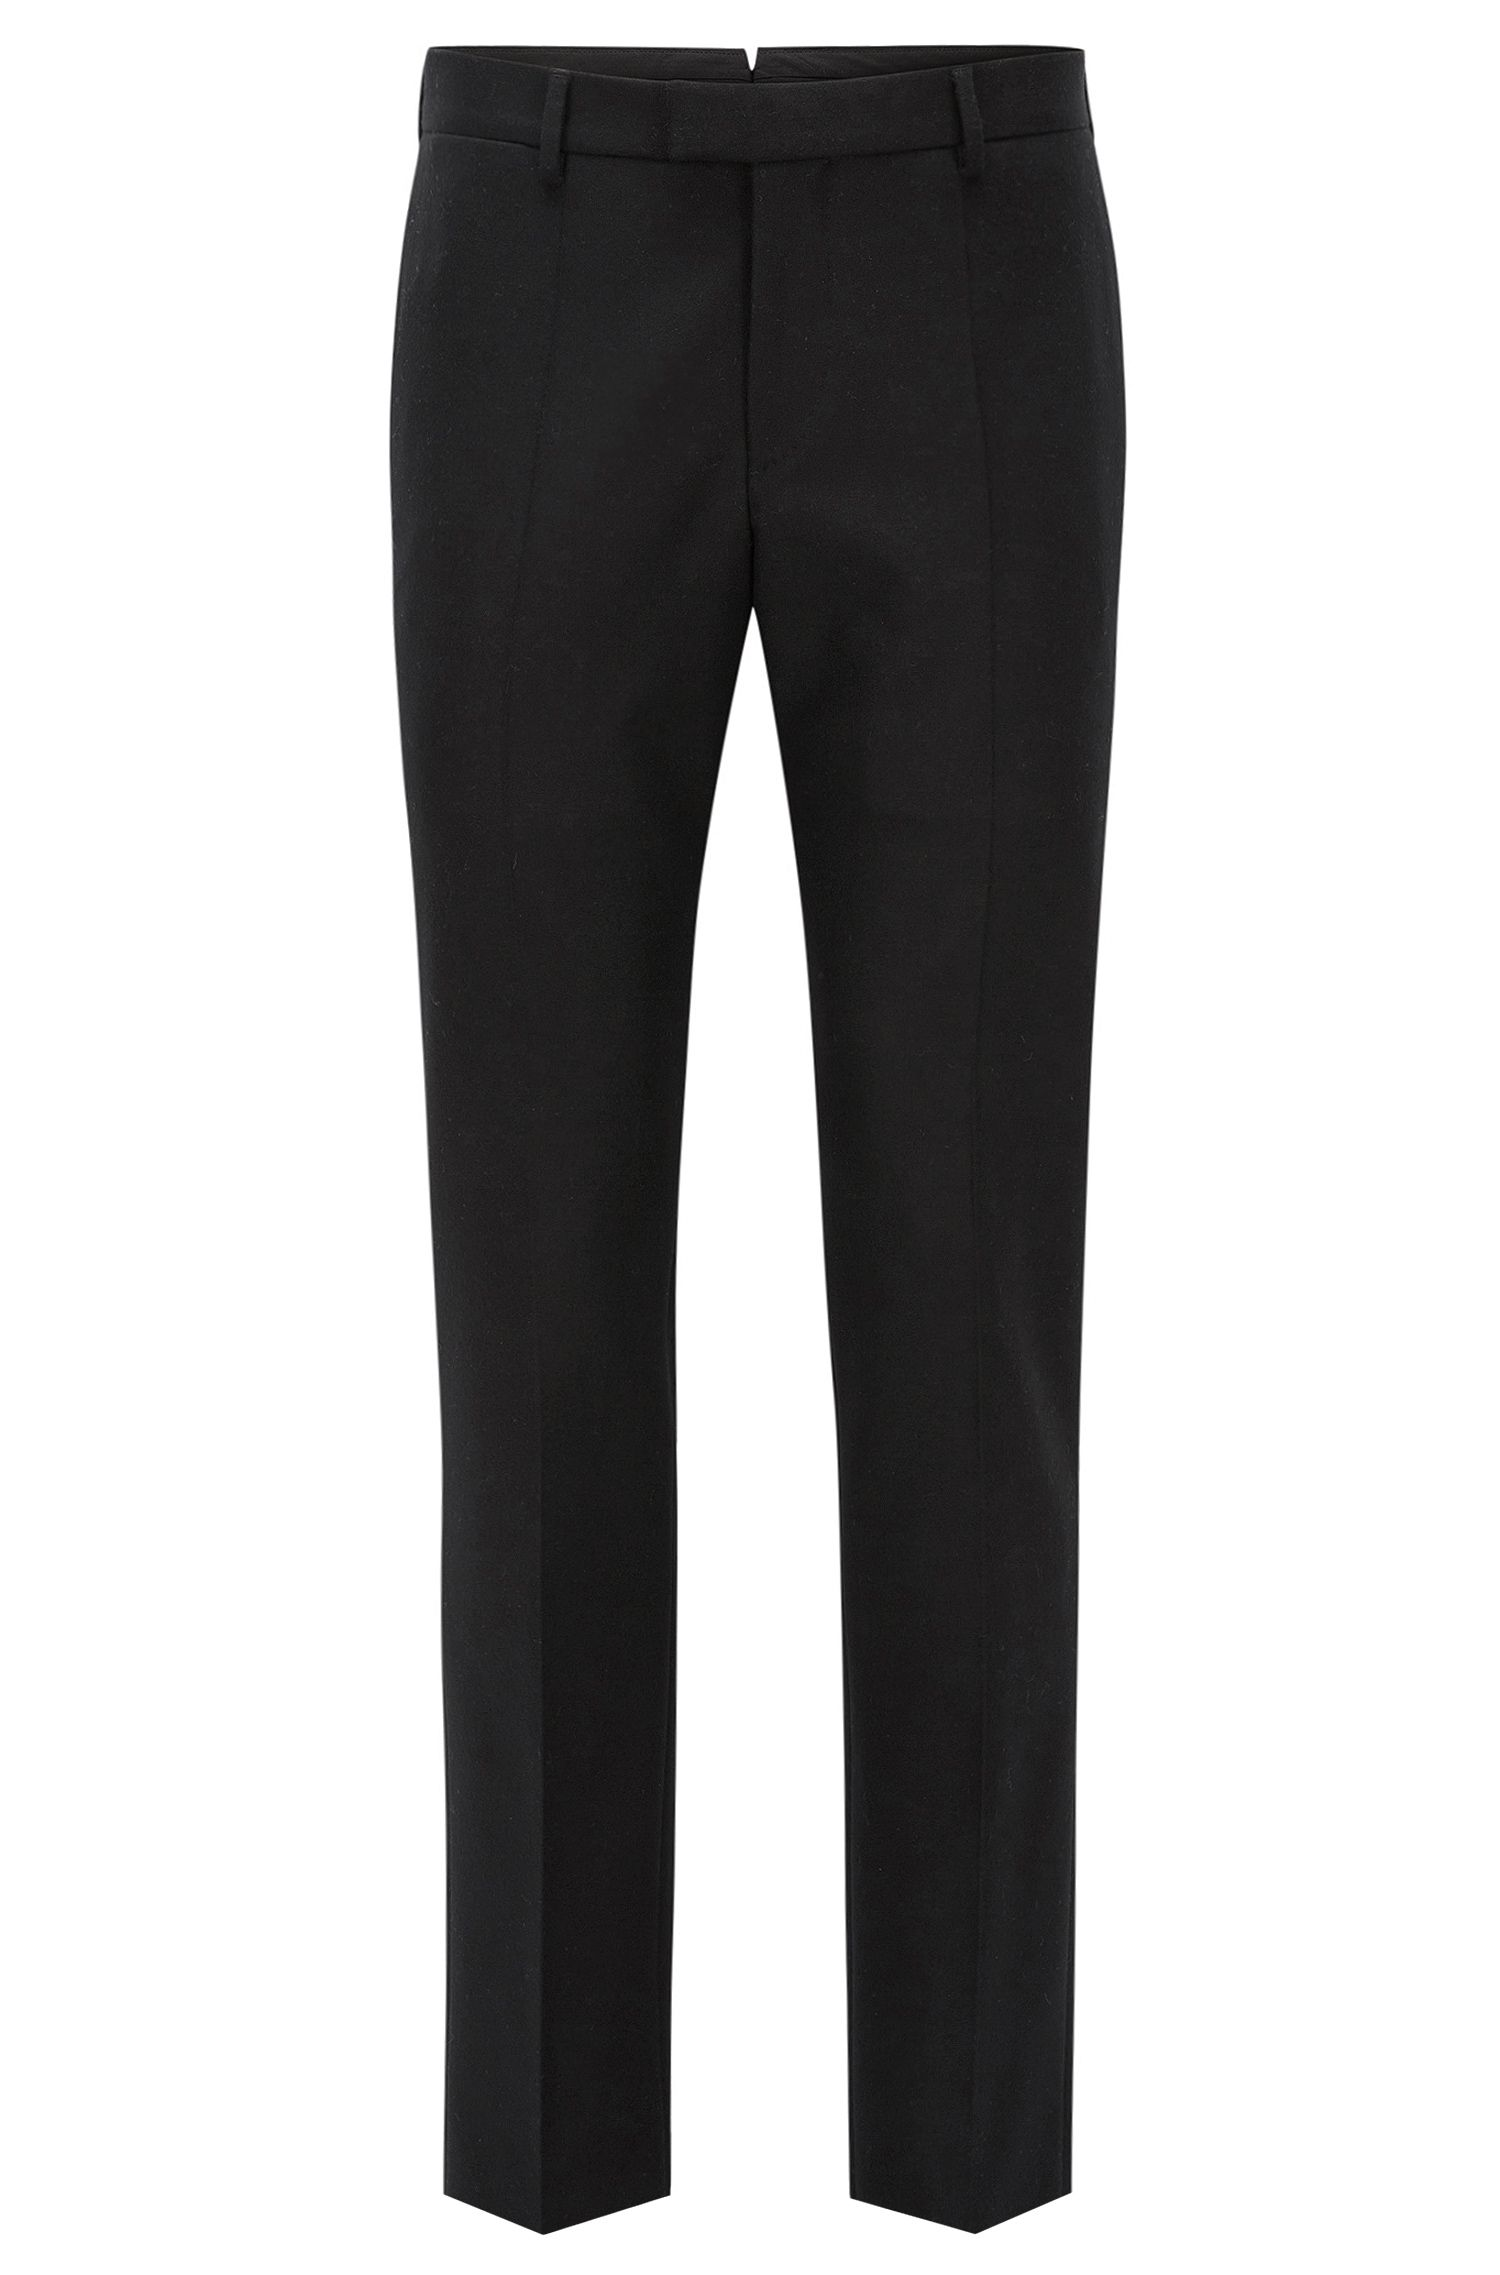 Pantaloni slim fit in lana con cintura estensibile